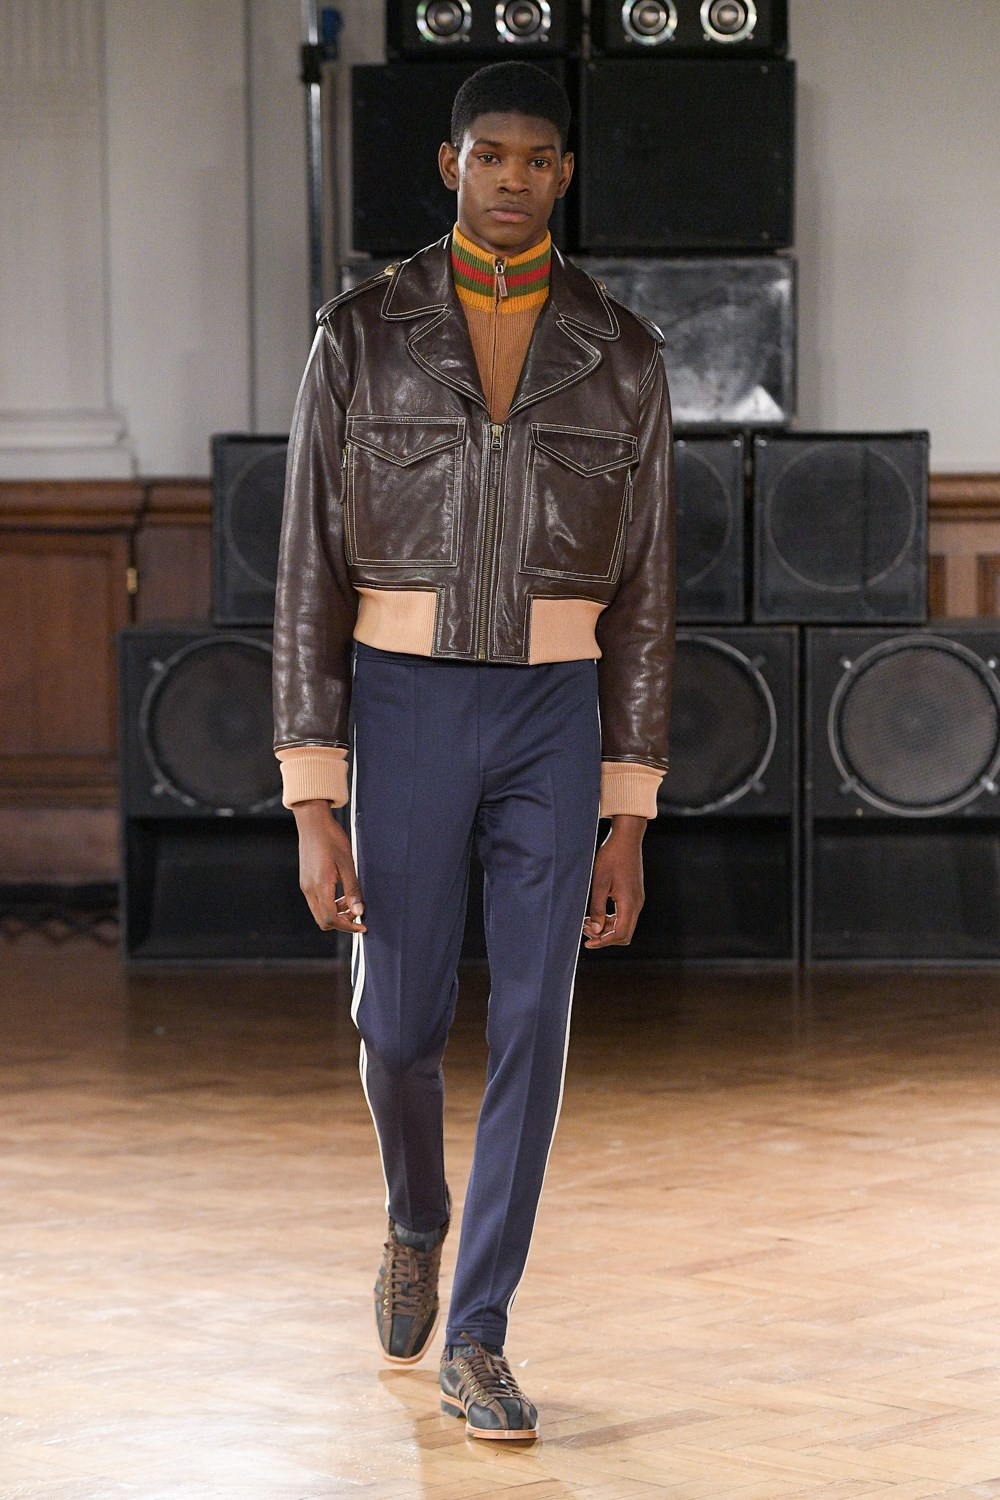 Wales Bonner - Automne-Hiver 2020-2021 - London Fashion Week Men's